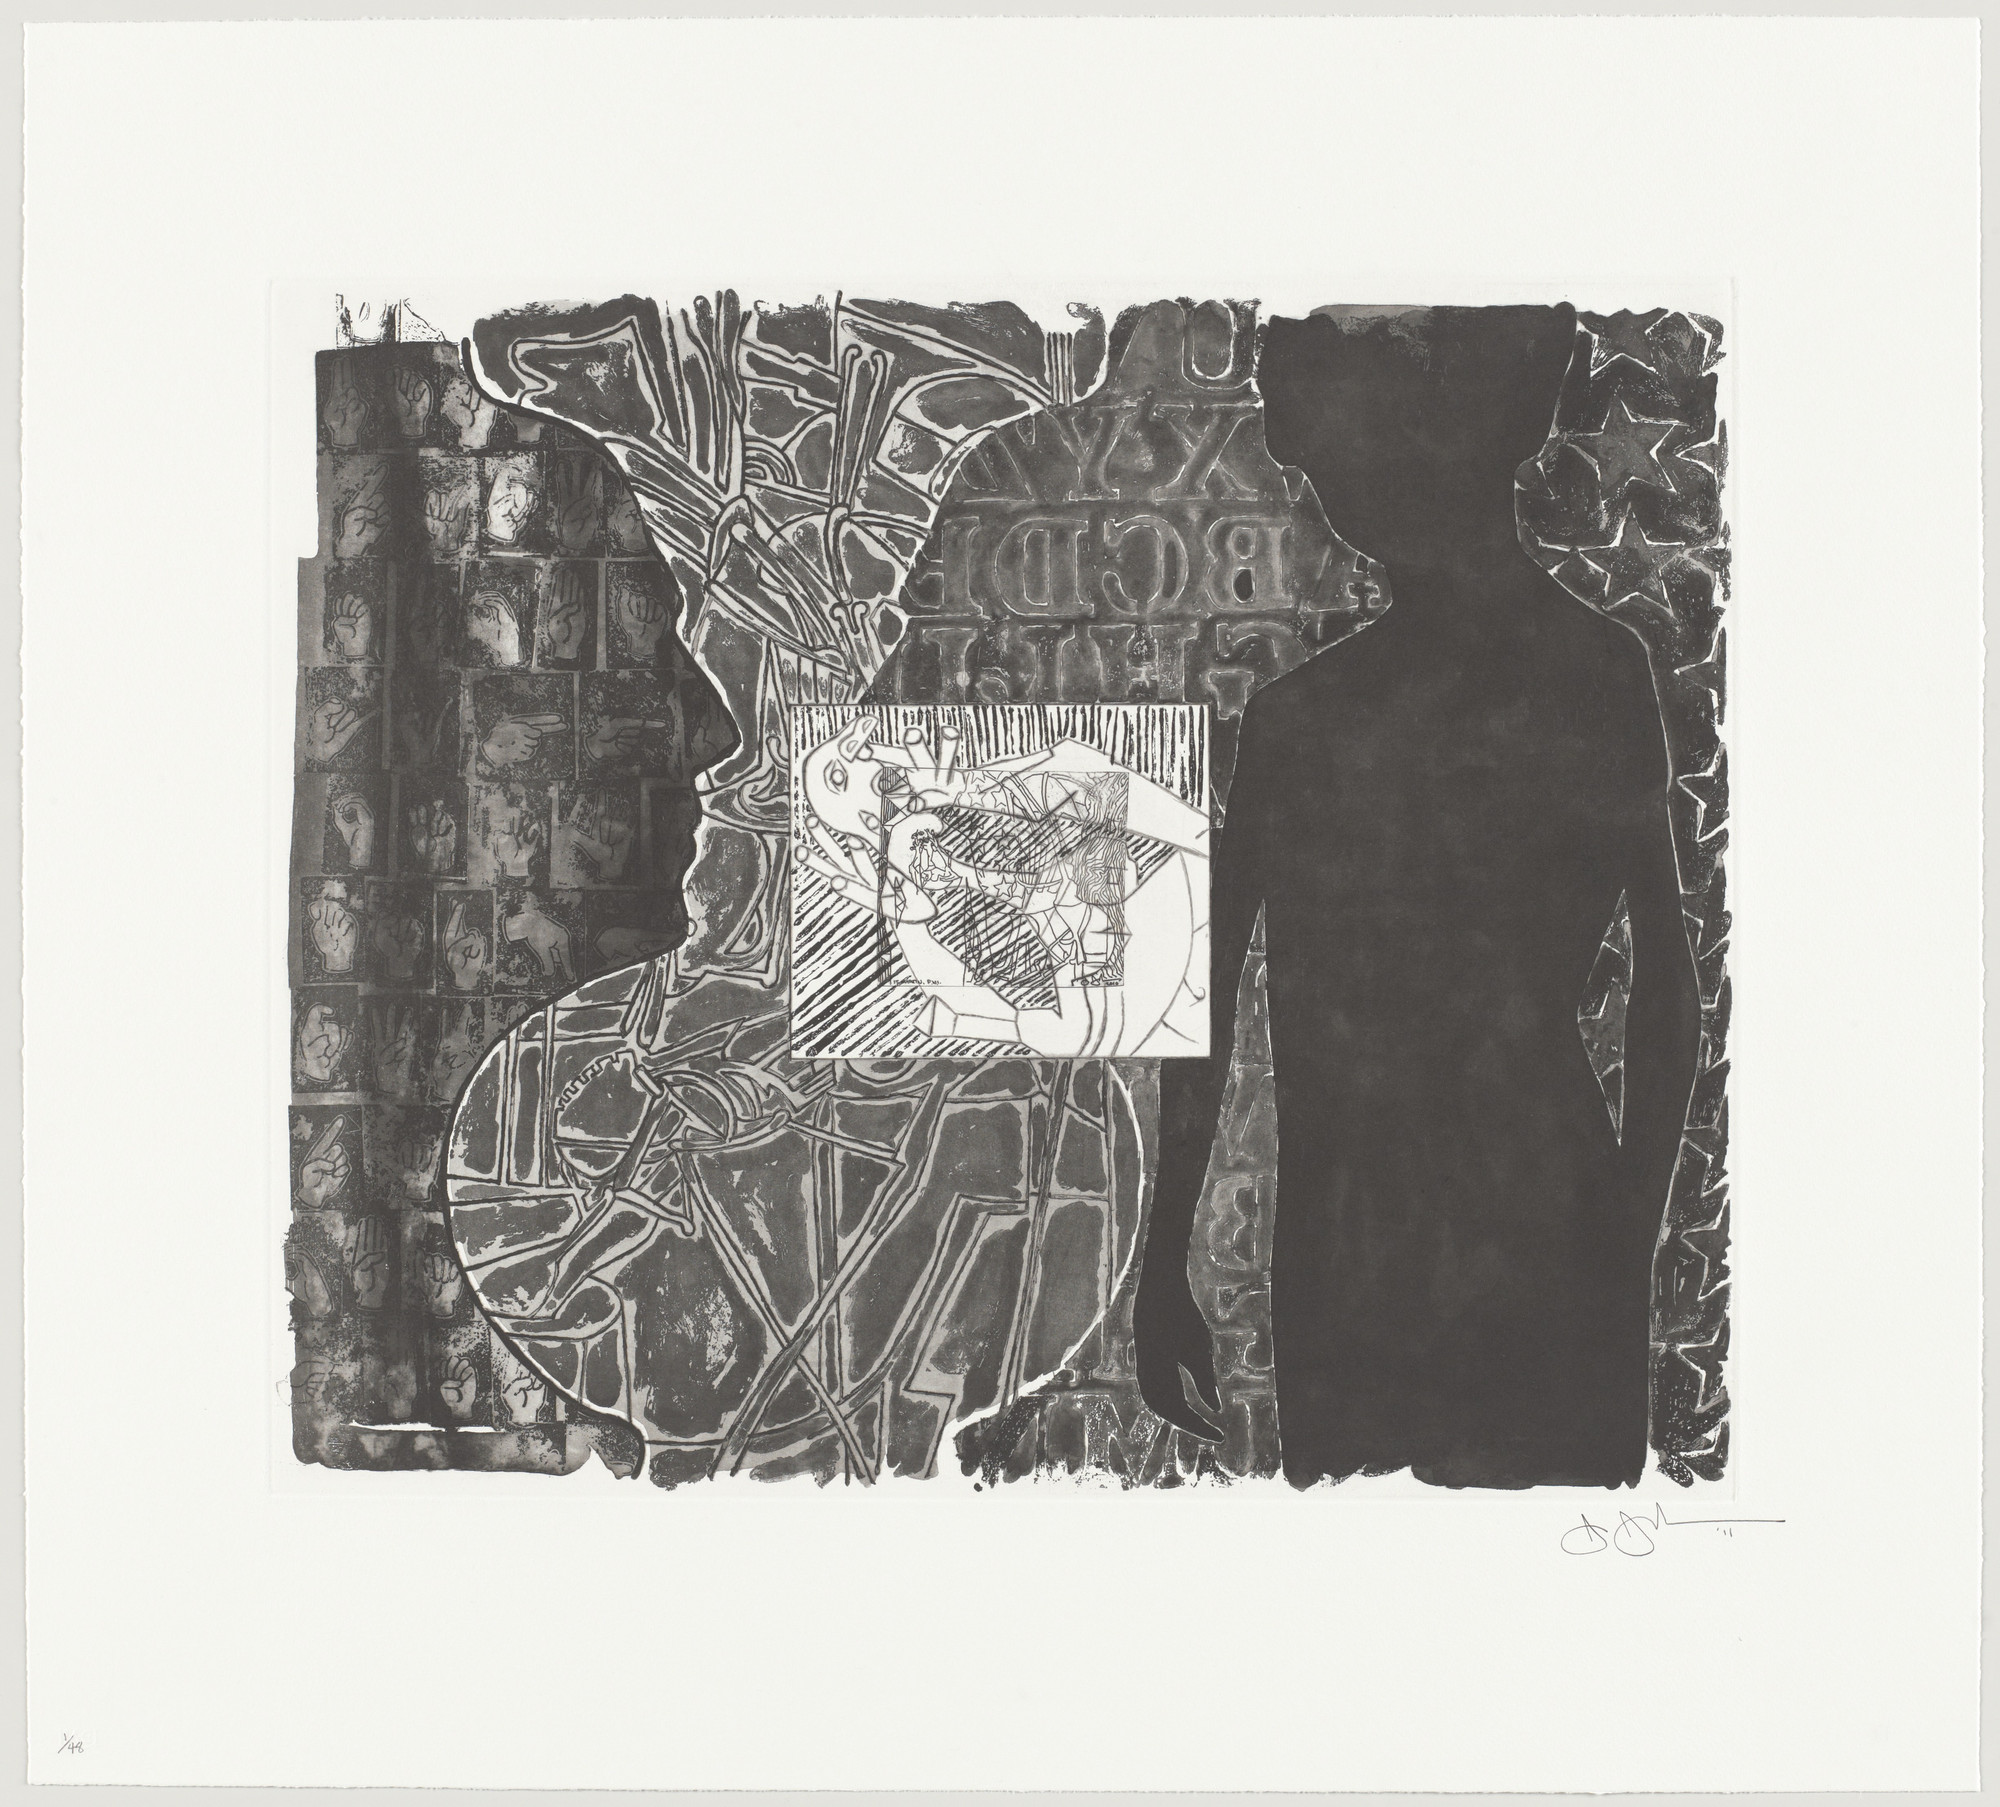 Jasper Johns. Shrinky Dink 1. 2011